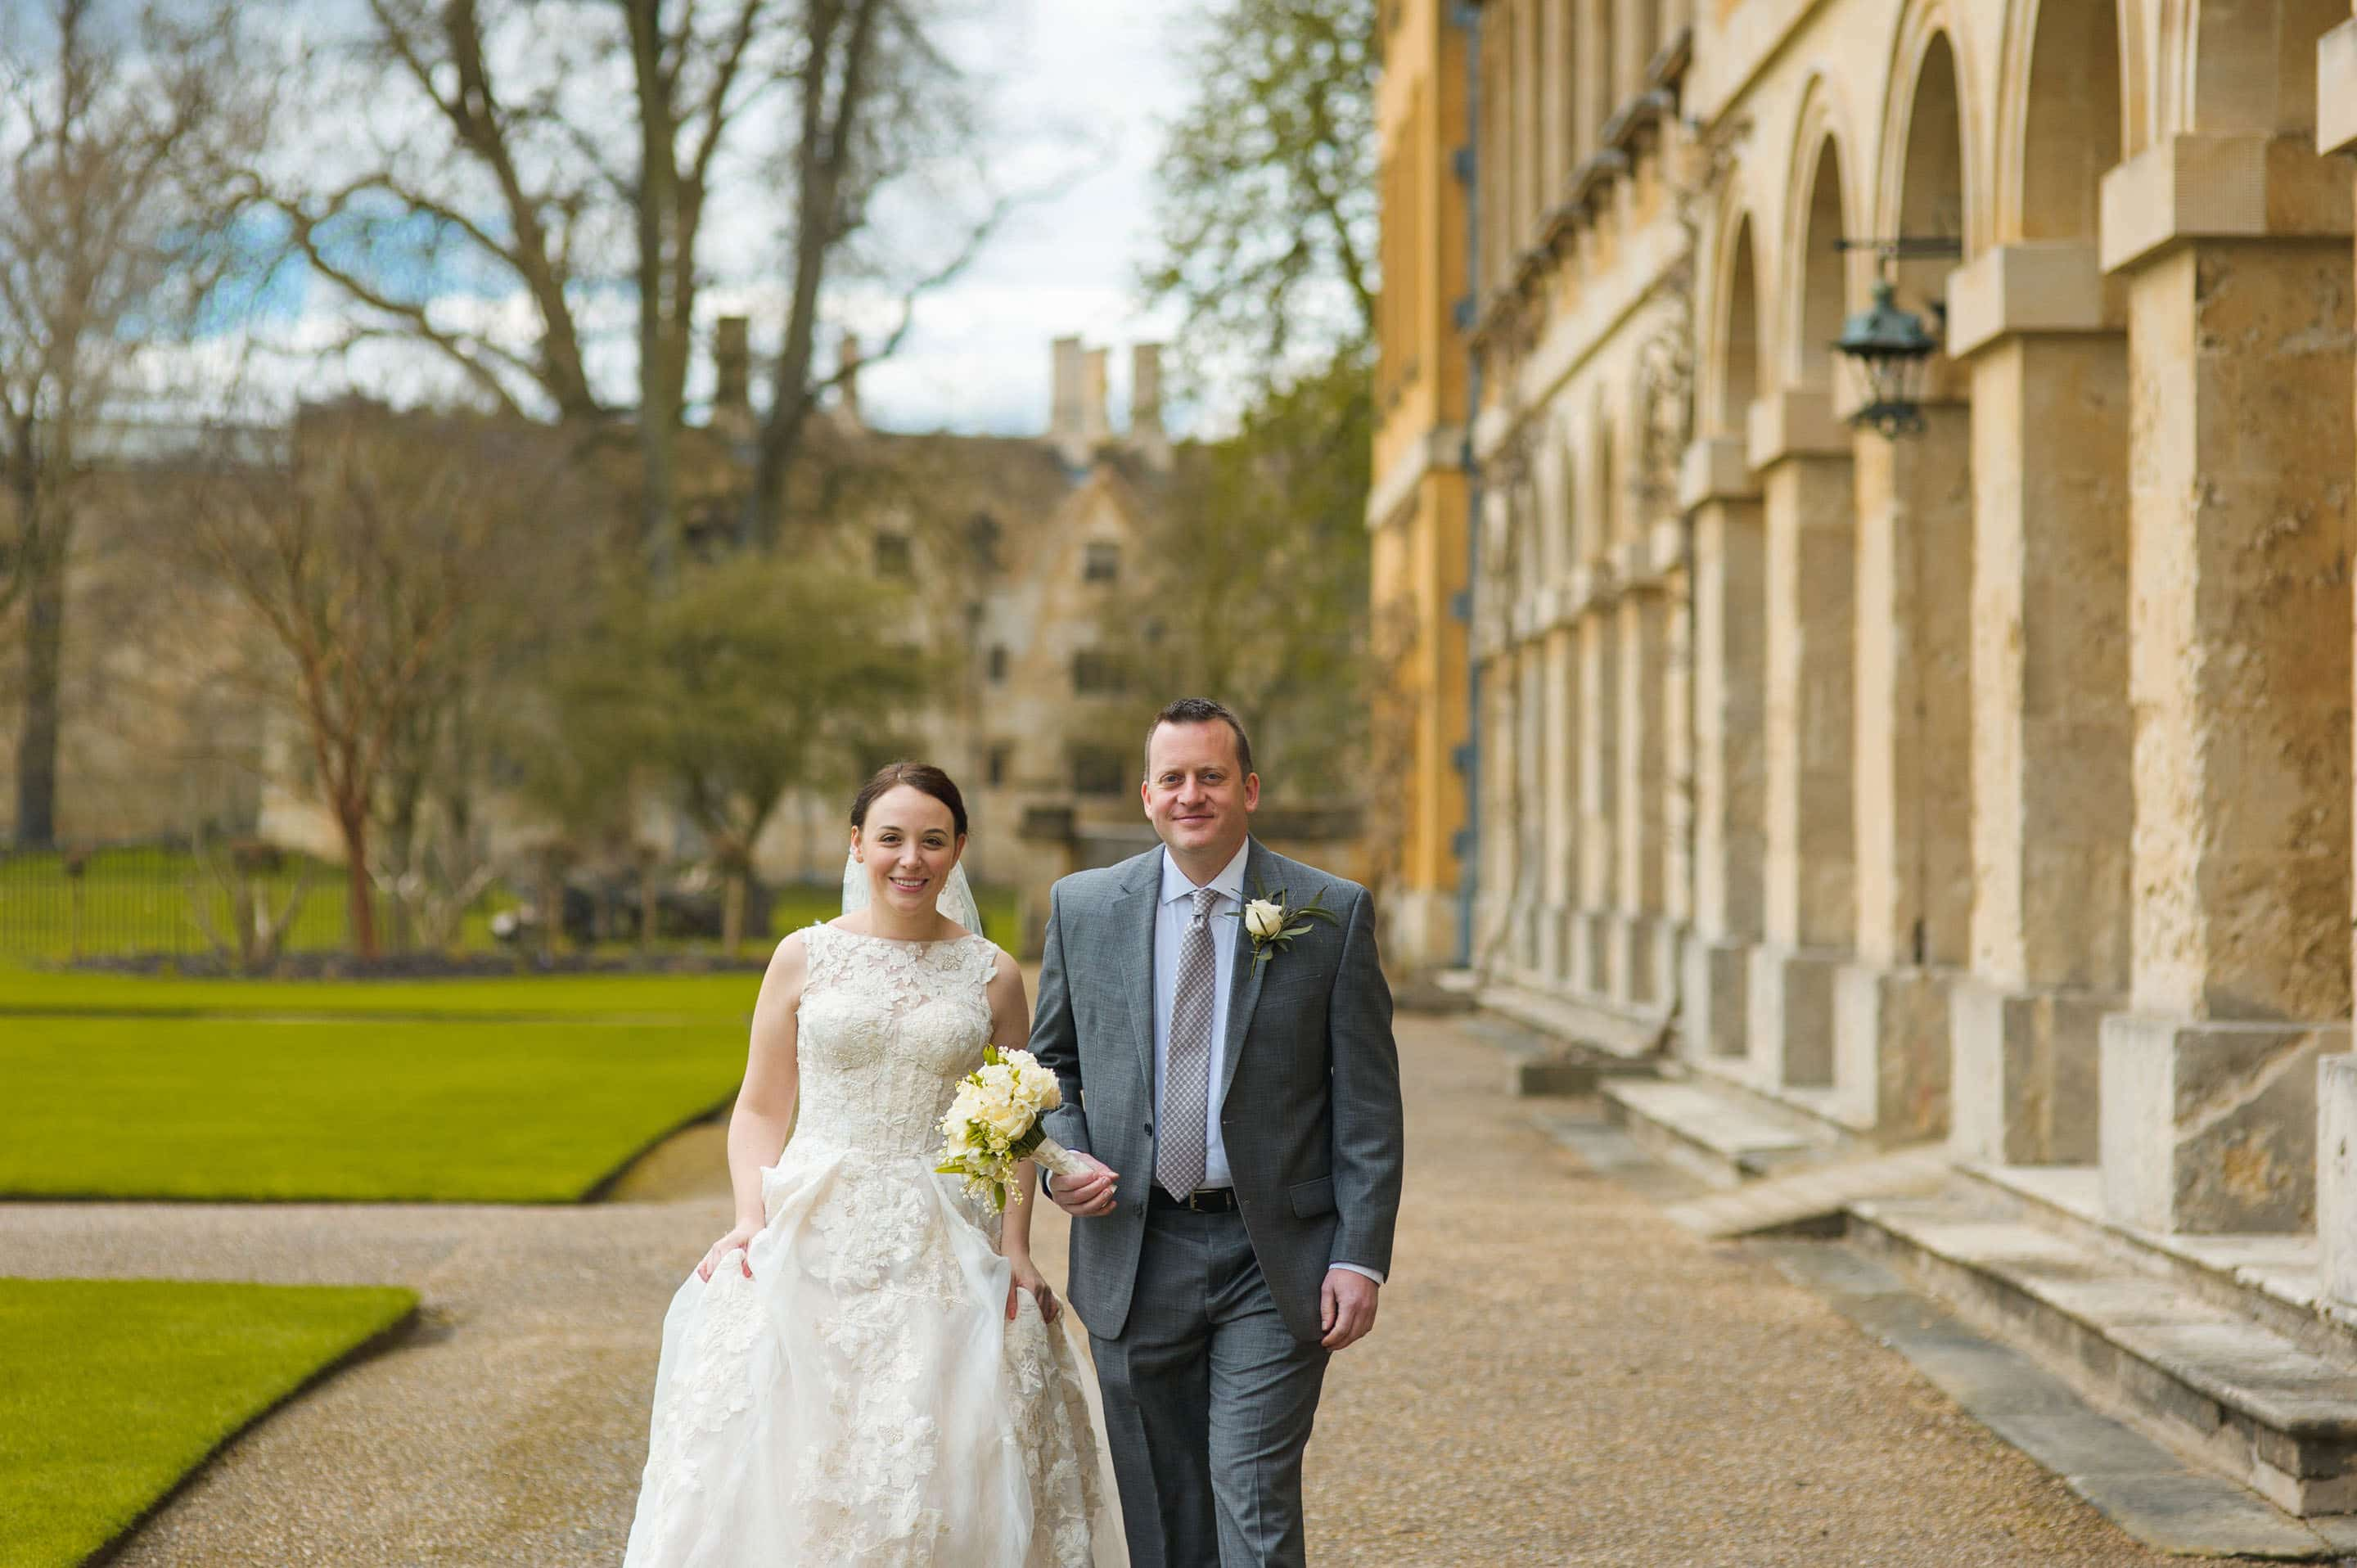 Tommie + Virginia | Wedding at Magdalen College in Oxford 21